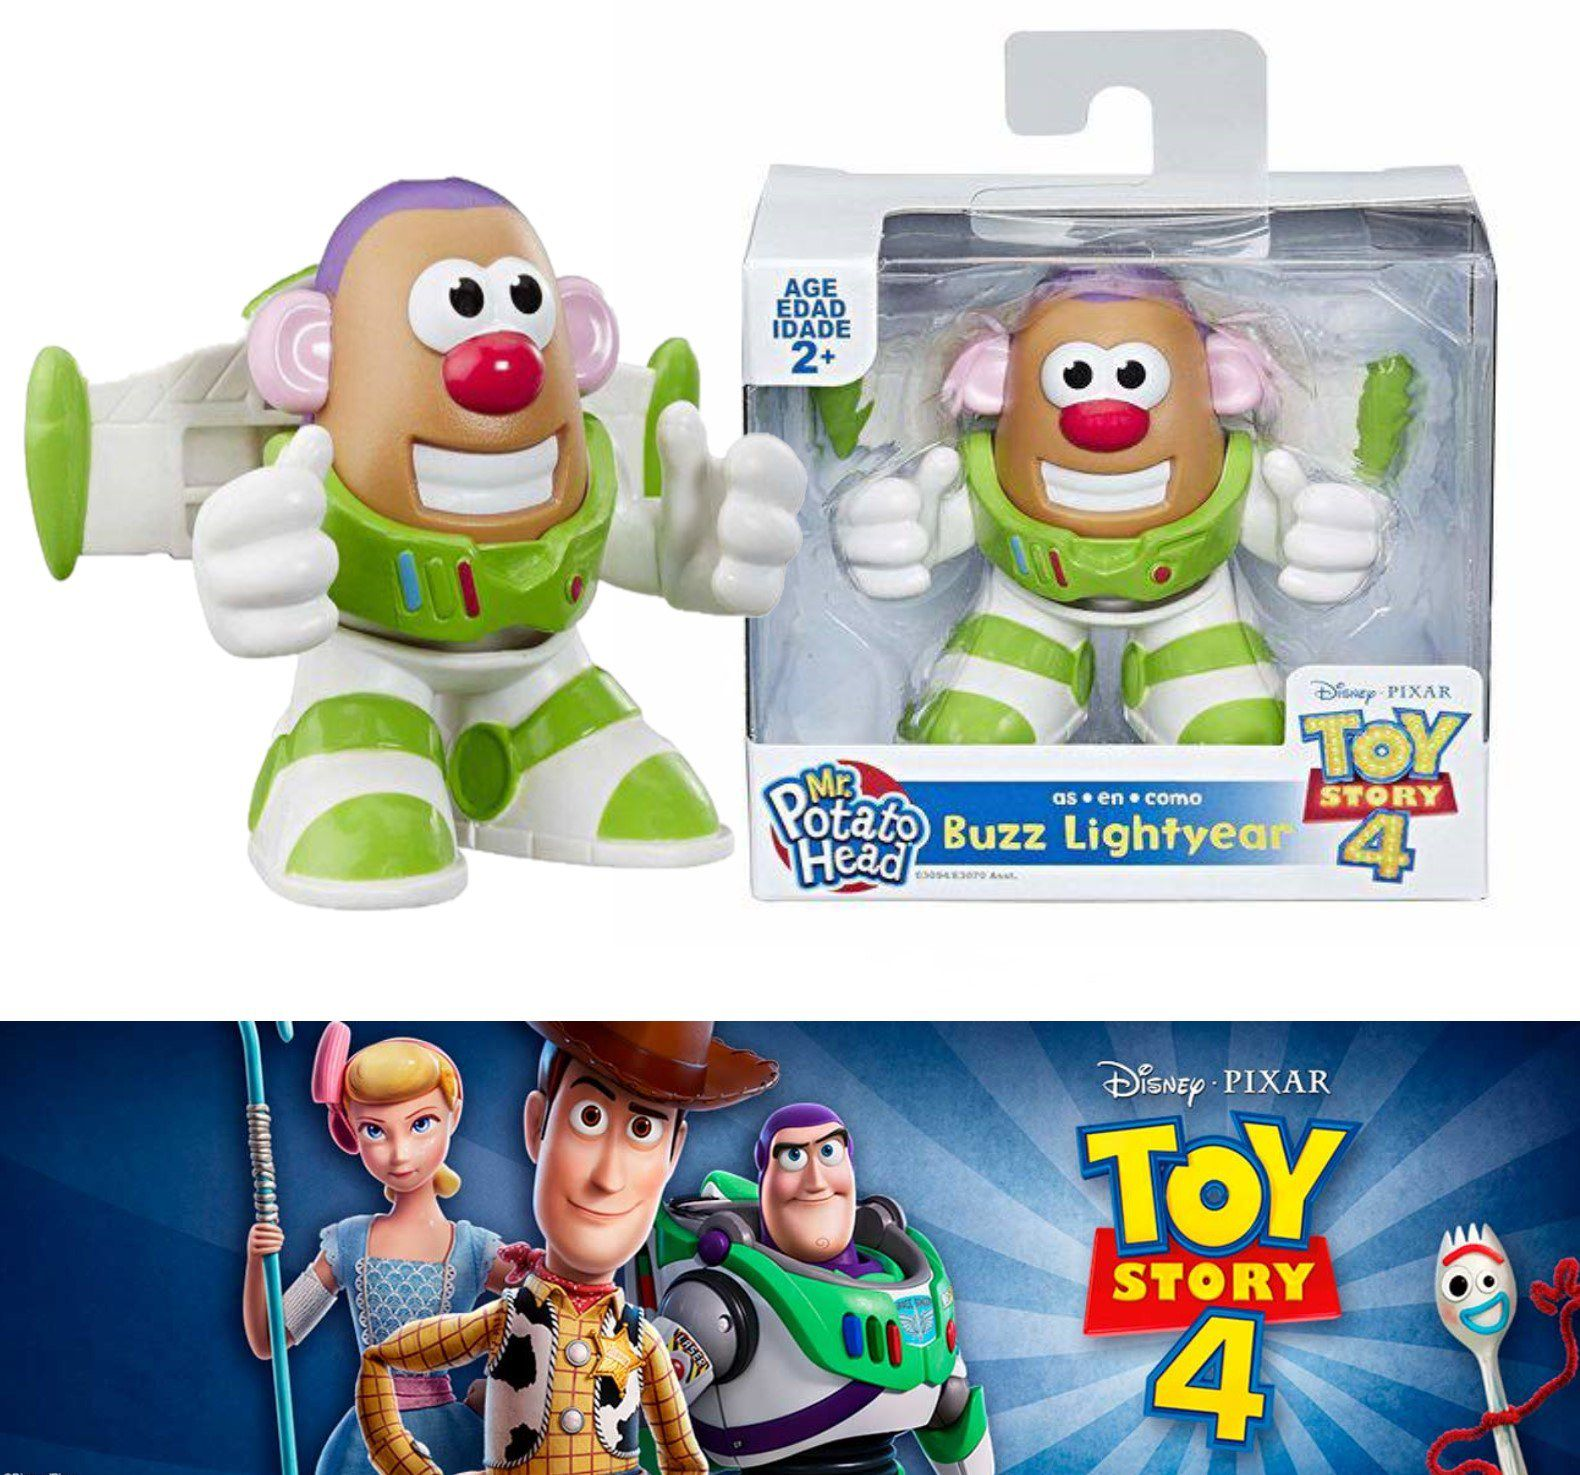 Boneco Buzz Lightyear - Toy Story 4 - Mr Potato Head como Buzz Lightyear E3094 - Hasbro